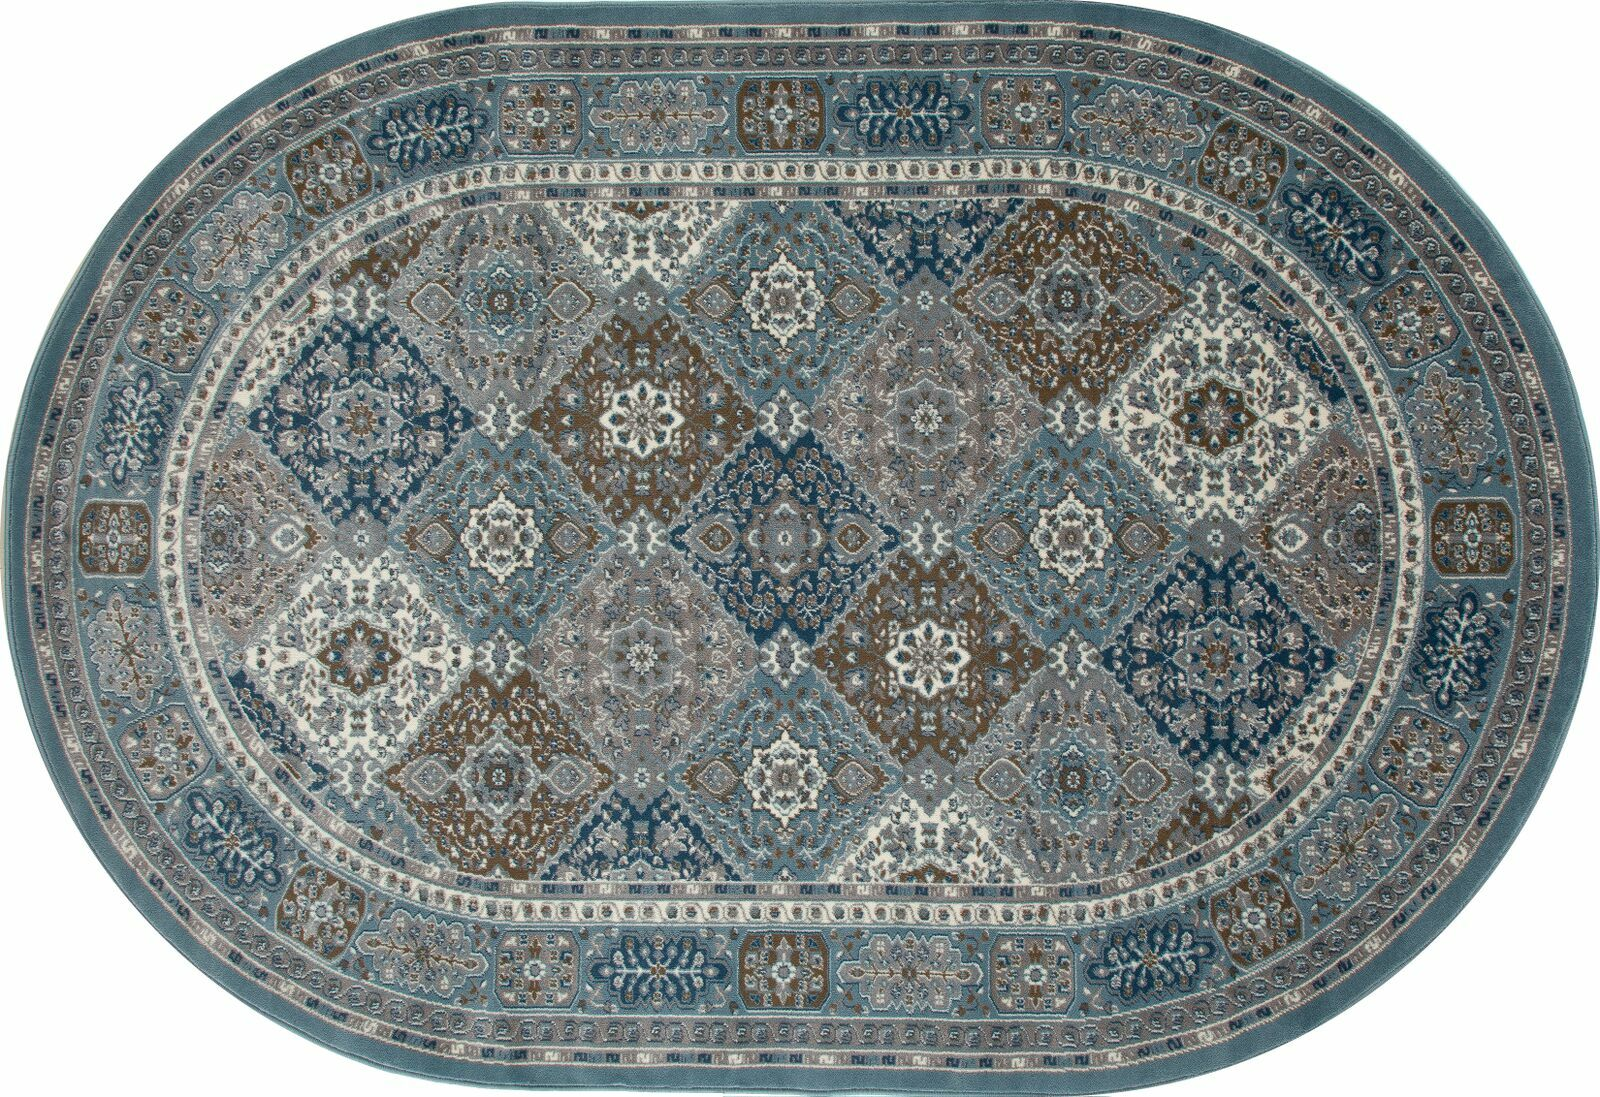 Jack Multi-Colored Area Rug Rug Size: OVAL 6'7 x 9'6